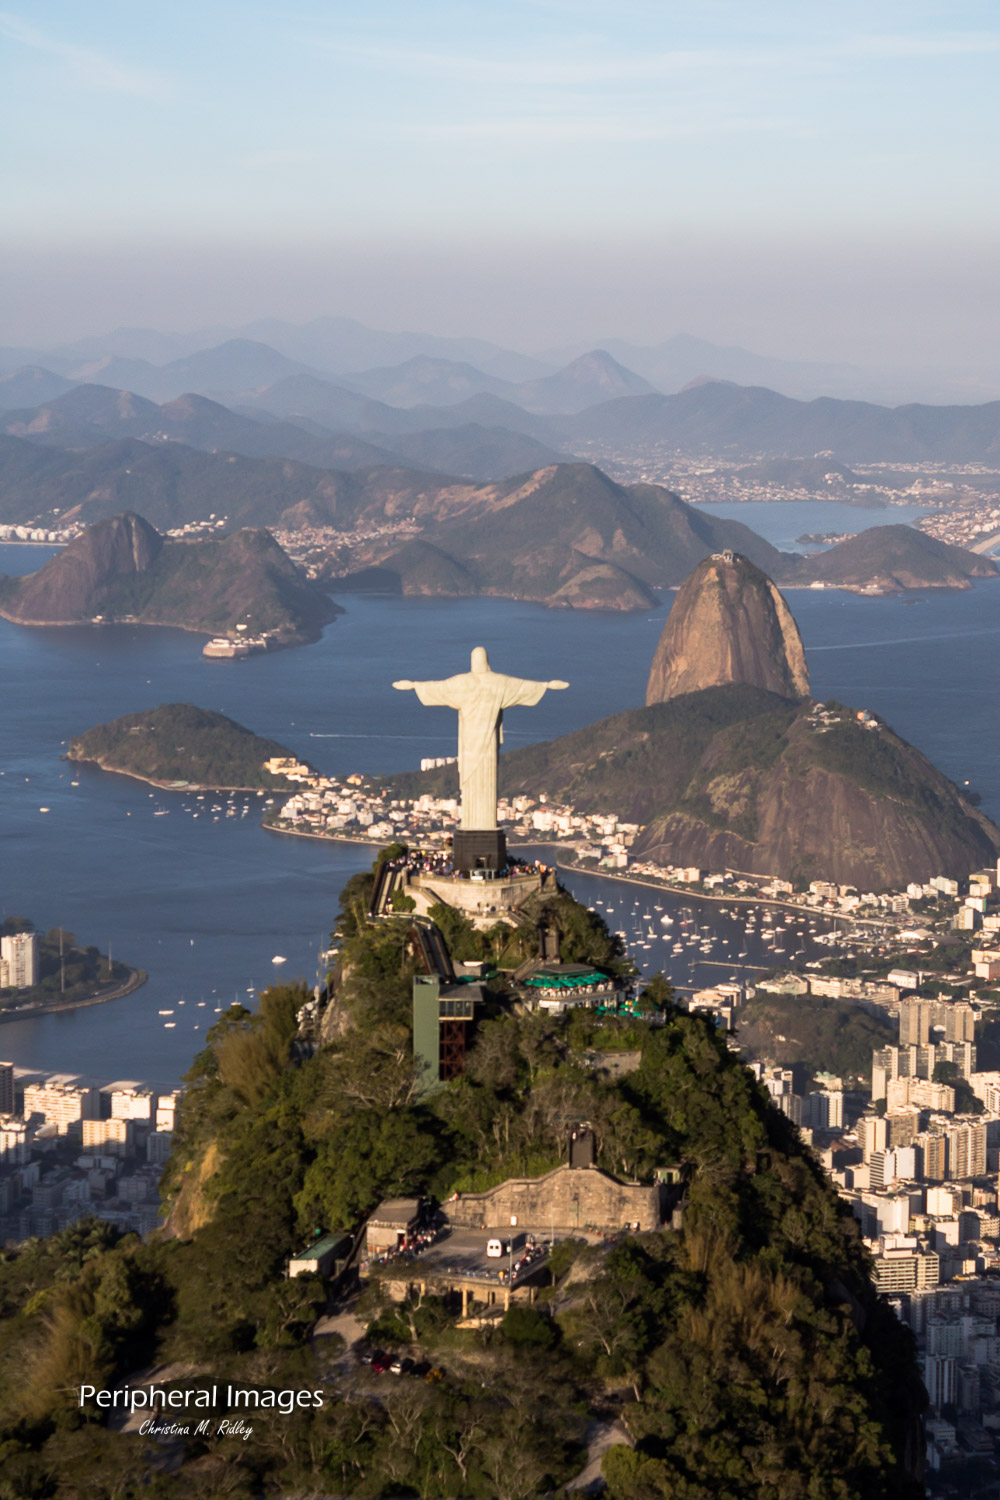 Aerial Photo of Sugarloaf and Christ the Redeemer- Rio de Janeiro Brazil